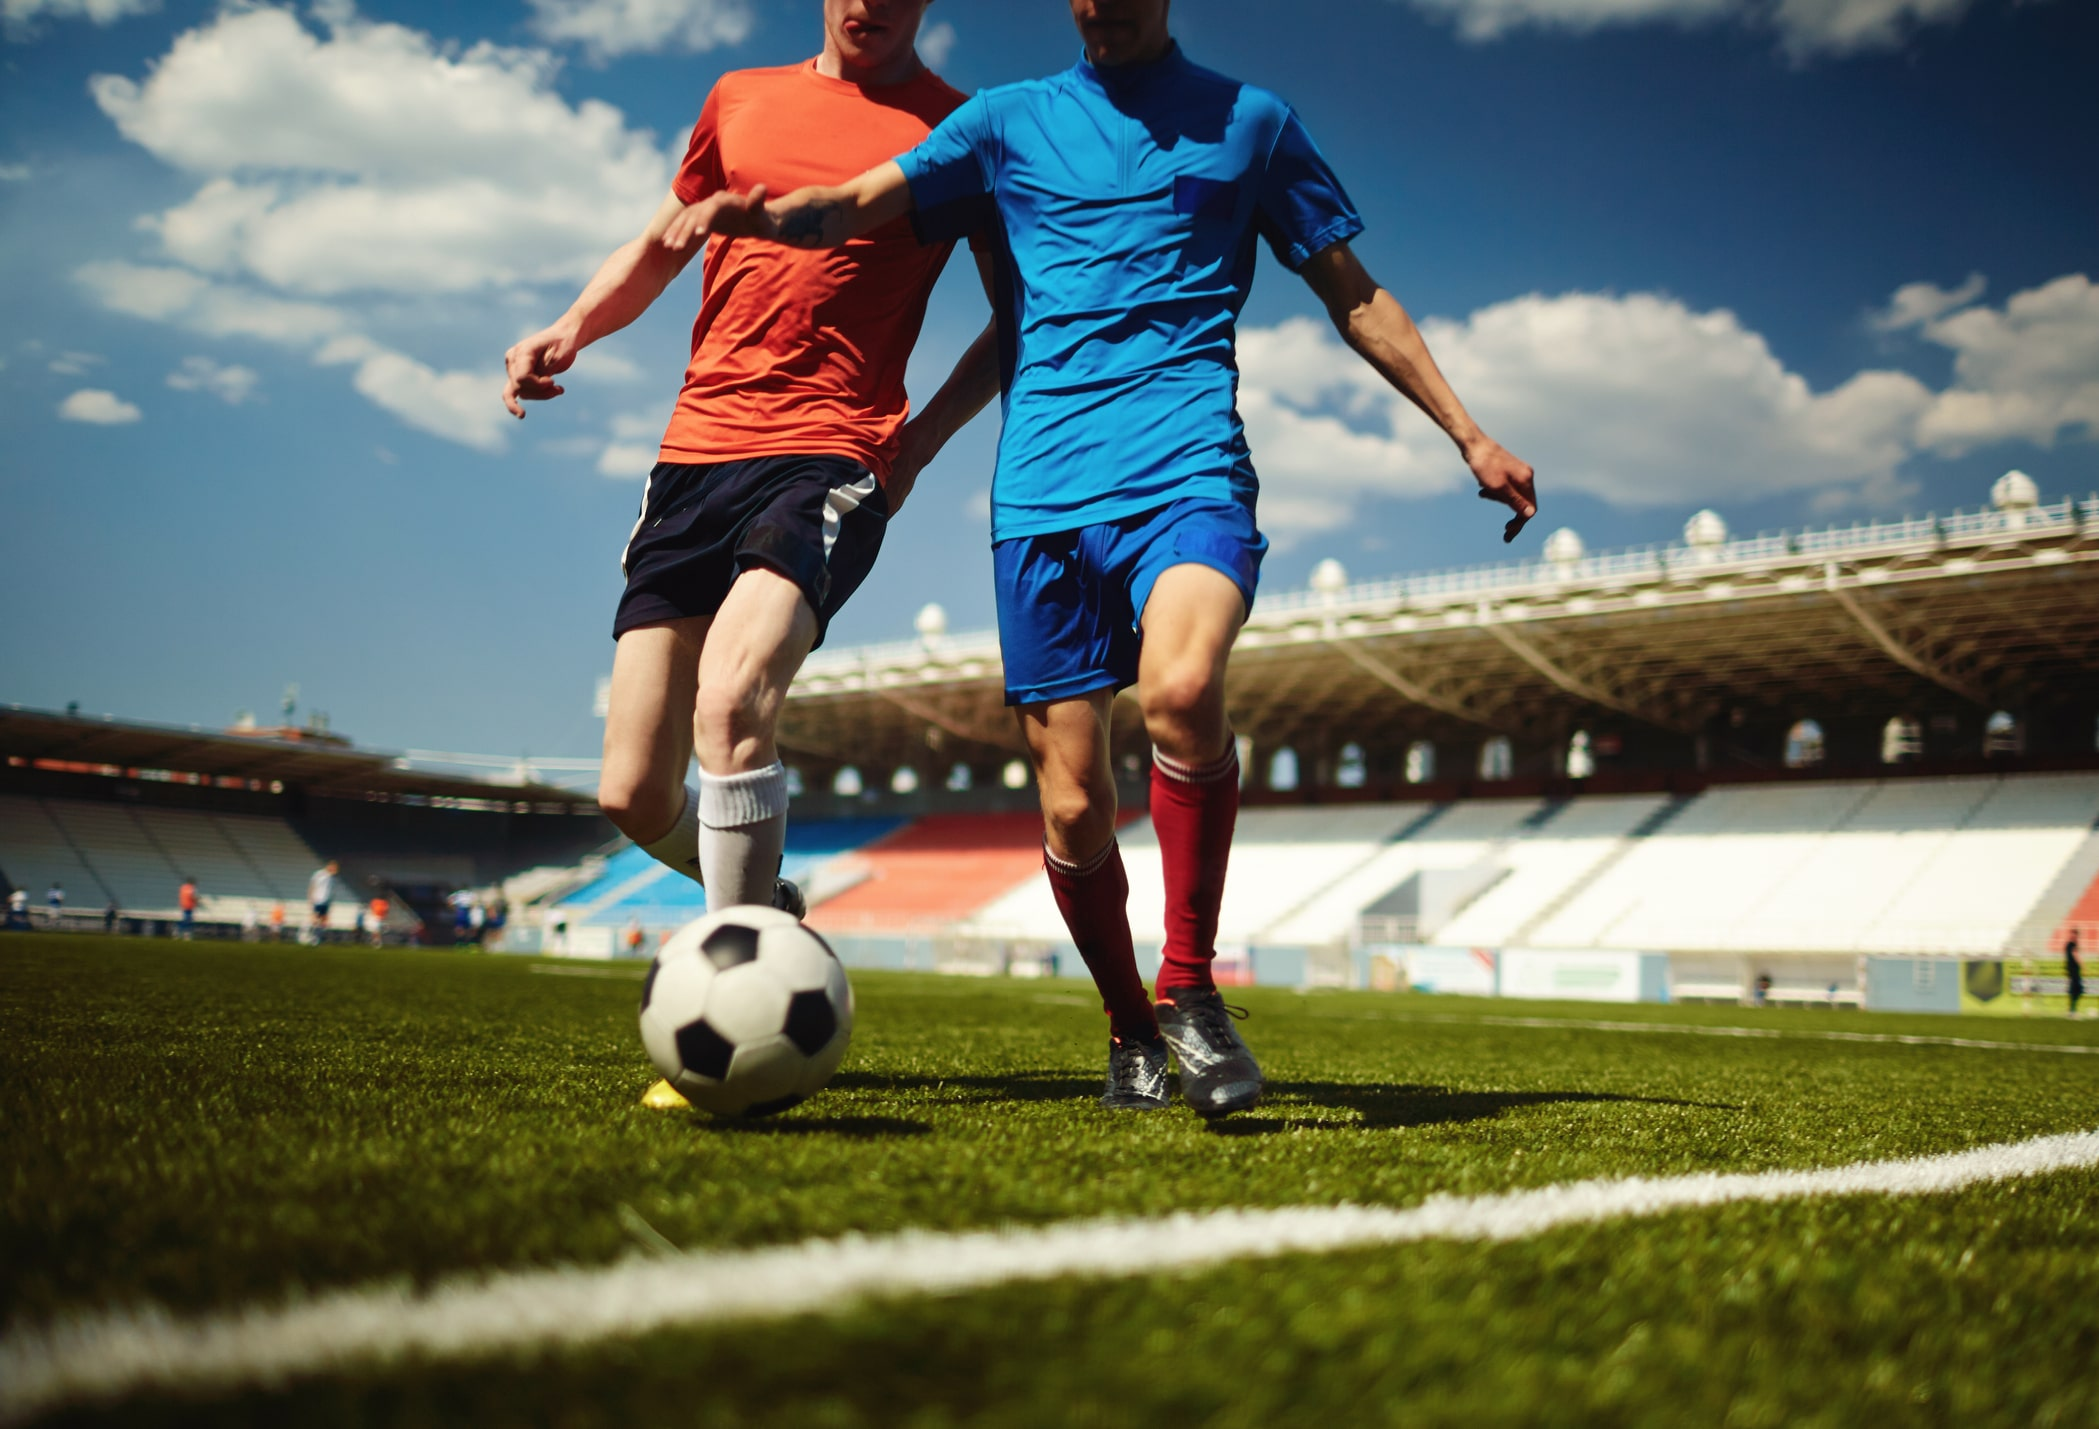 Two people playing football